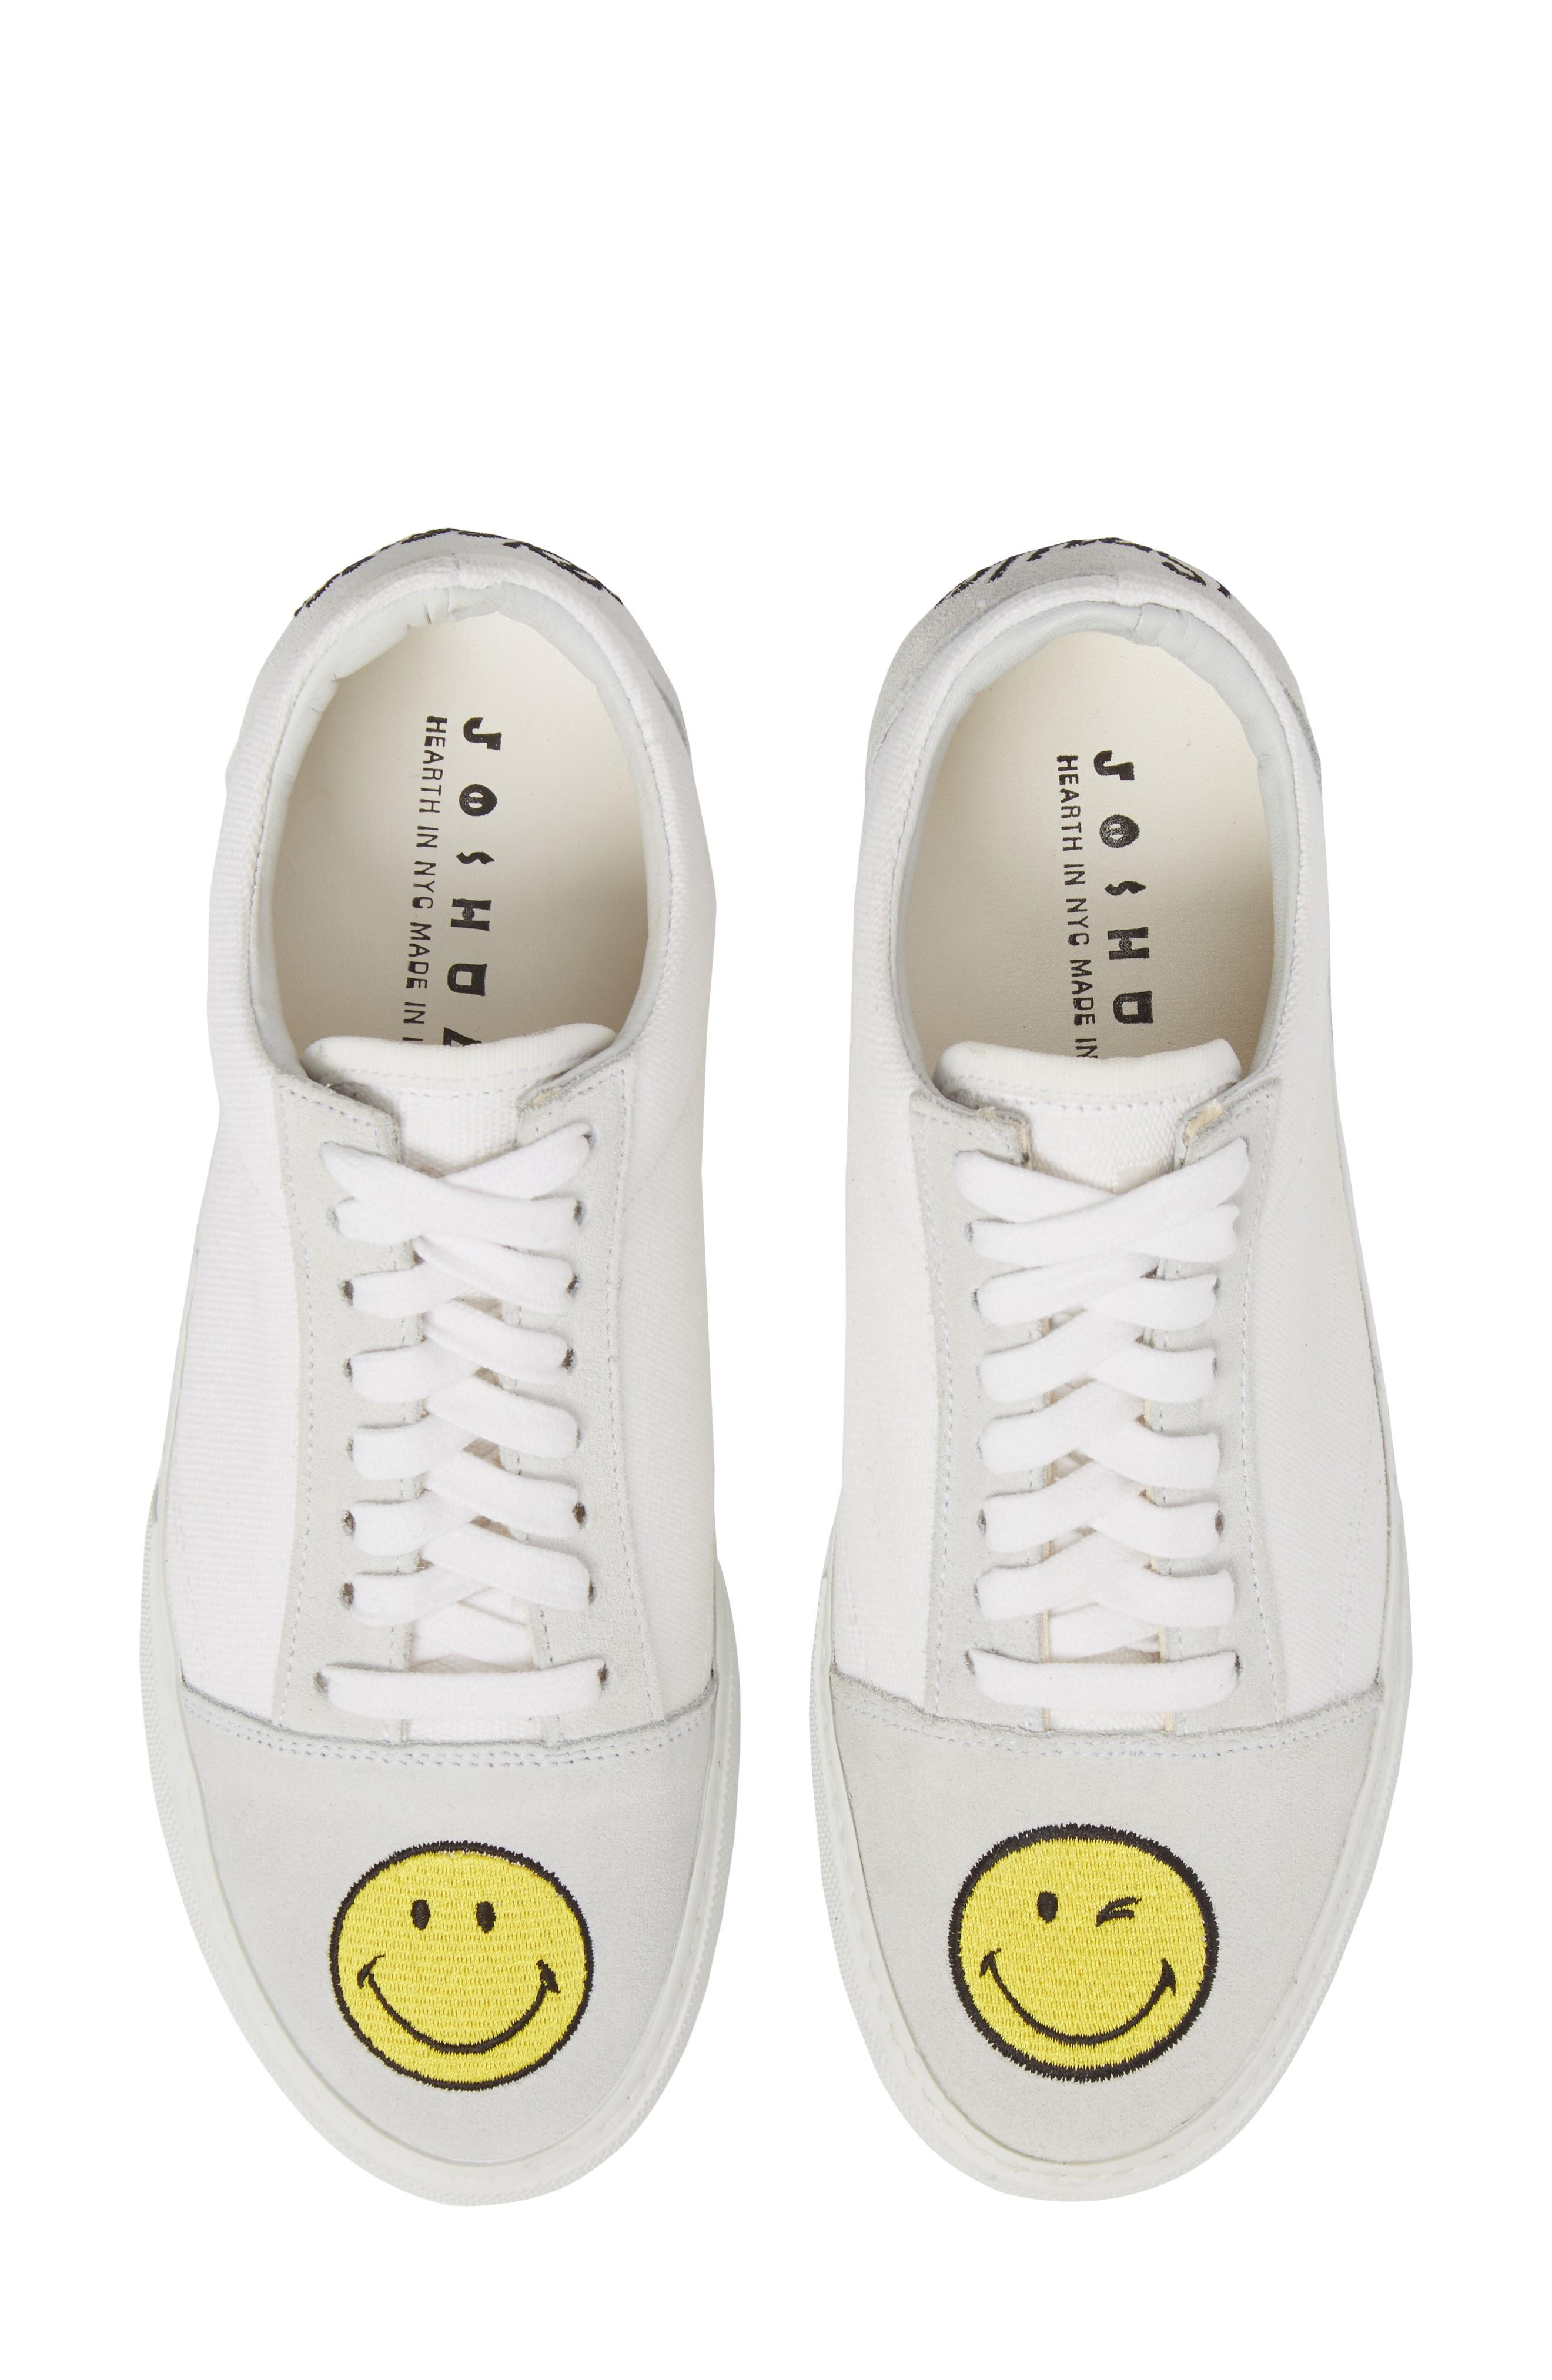 Joshua Sanders Embroidered Smiley Sneaker In White